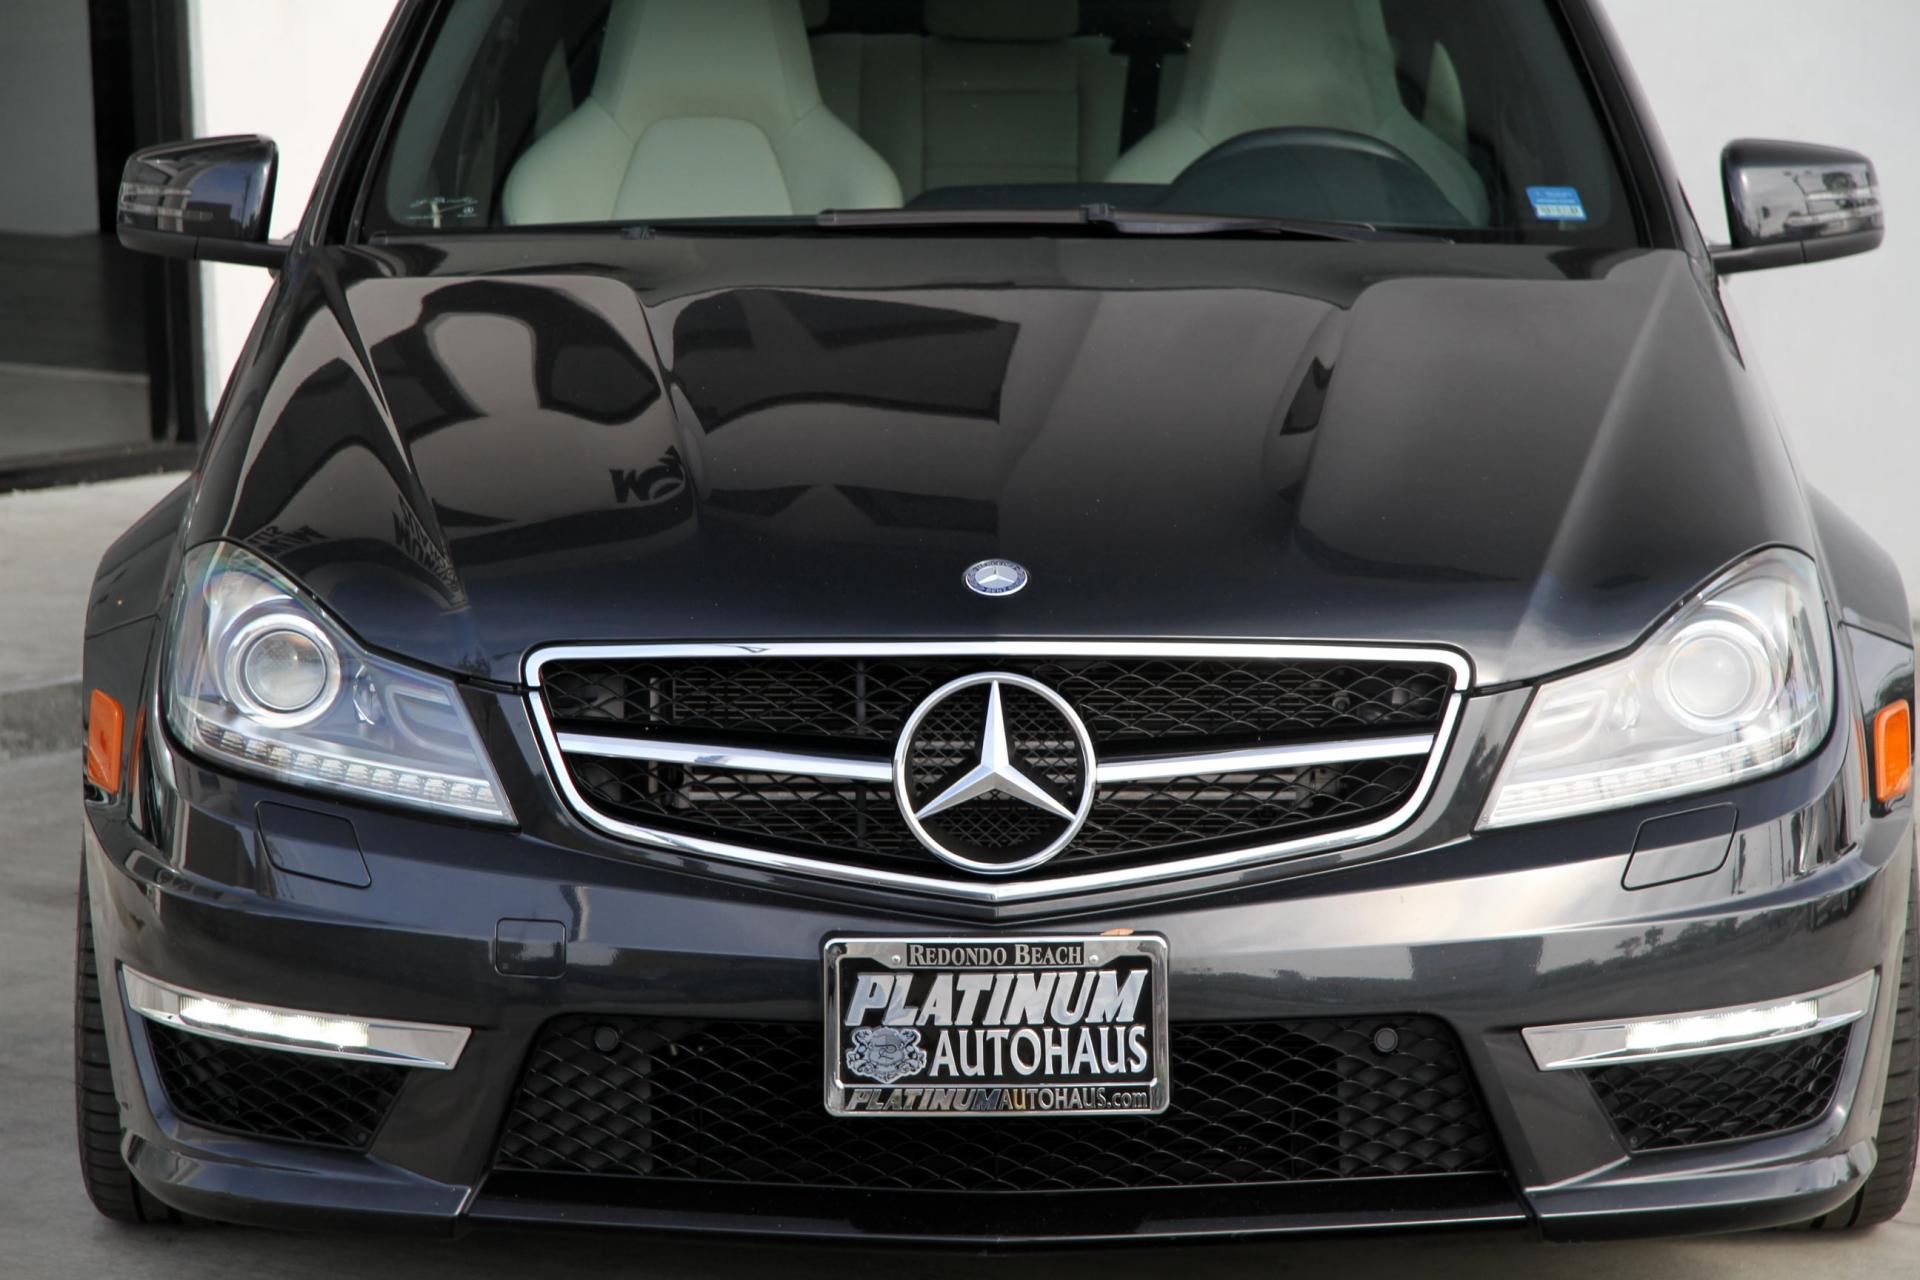 2012 mercedes benz c 63 amg stock 5888a for sale near for Nearest mercedes benz dealership